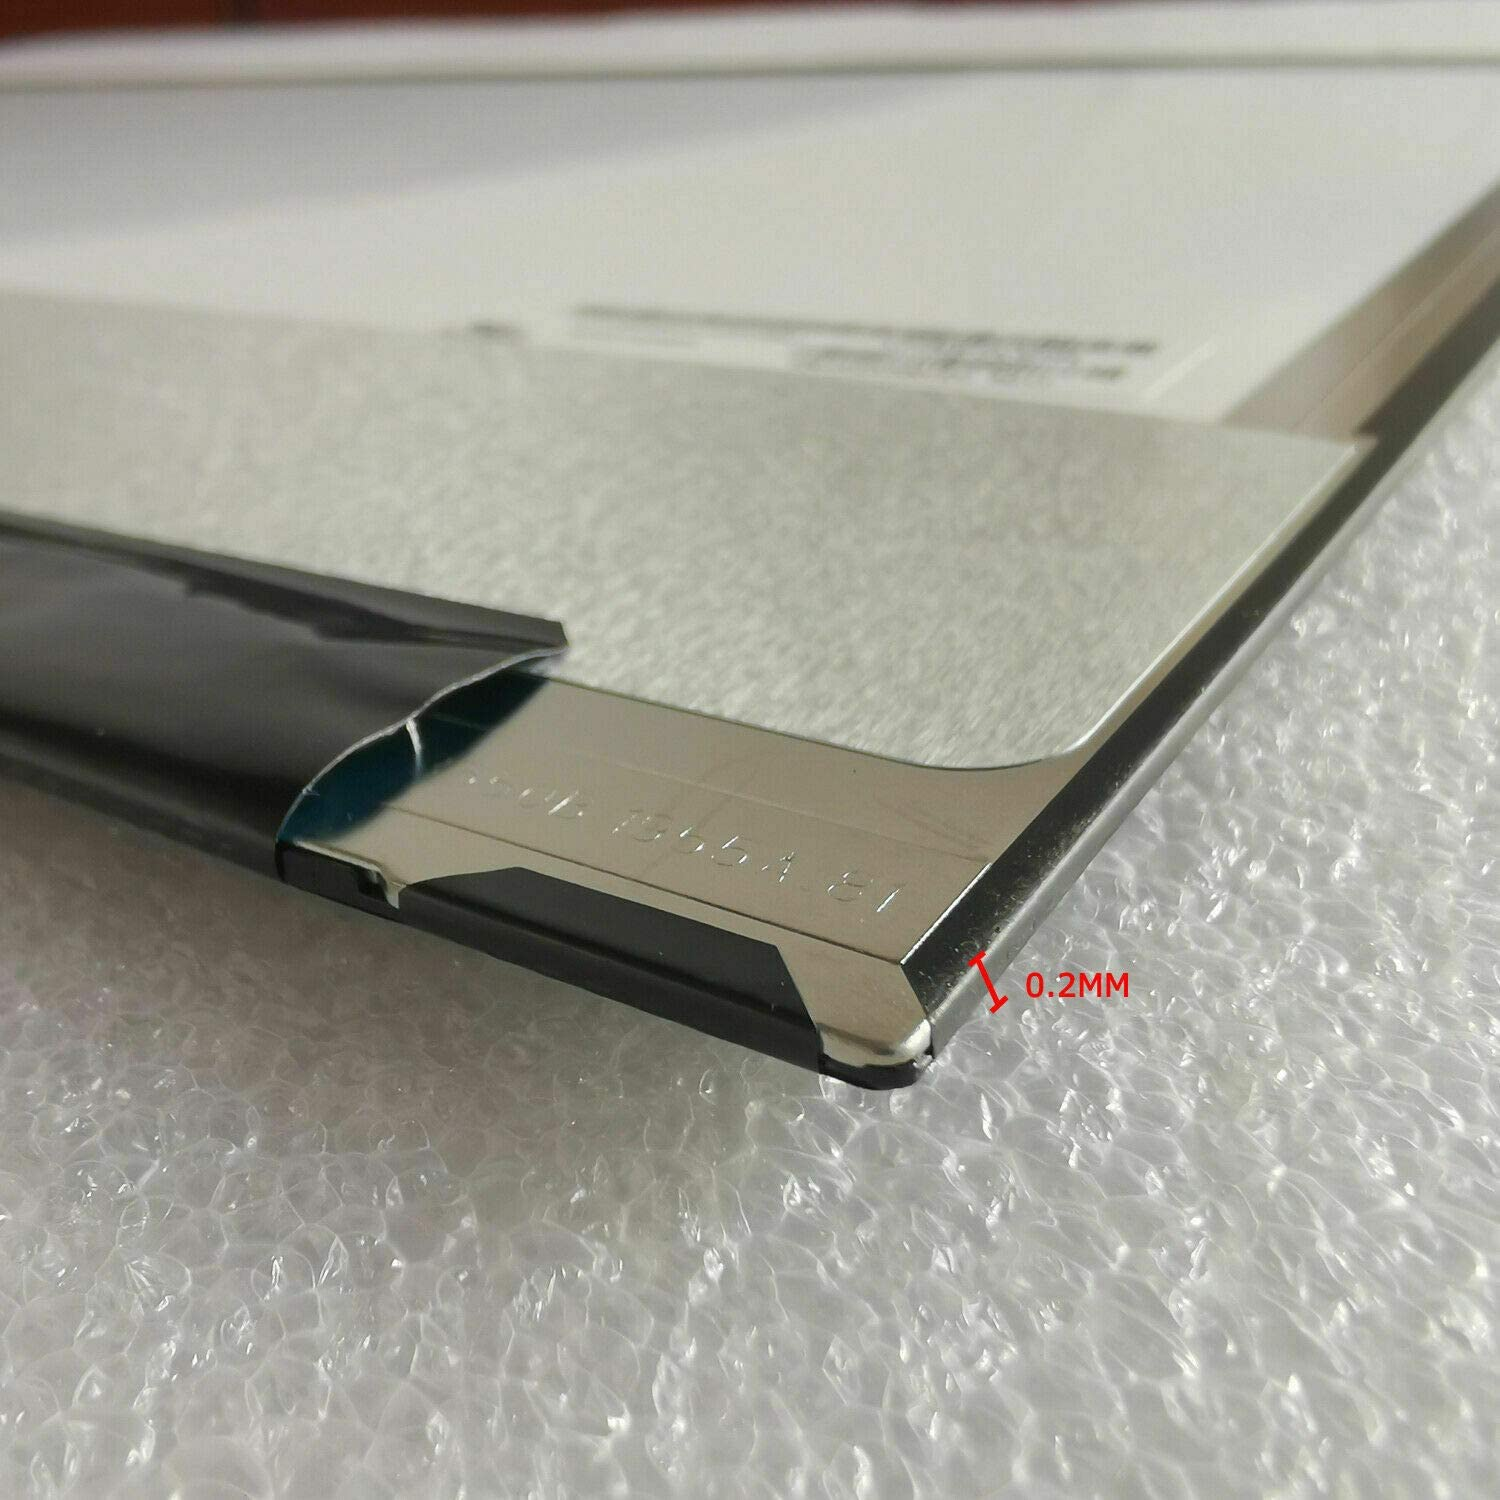 1920x1080 SP G2 LCD Screen LED Display Touch Digitizer Panel LP156WFA JYLTK New Genuine 15.6 FHD